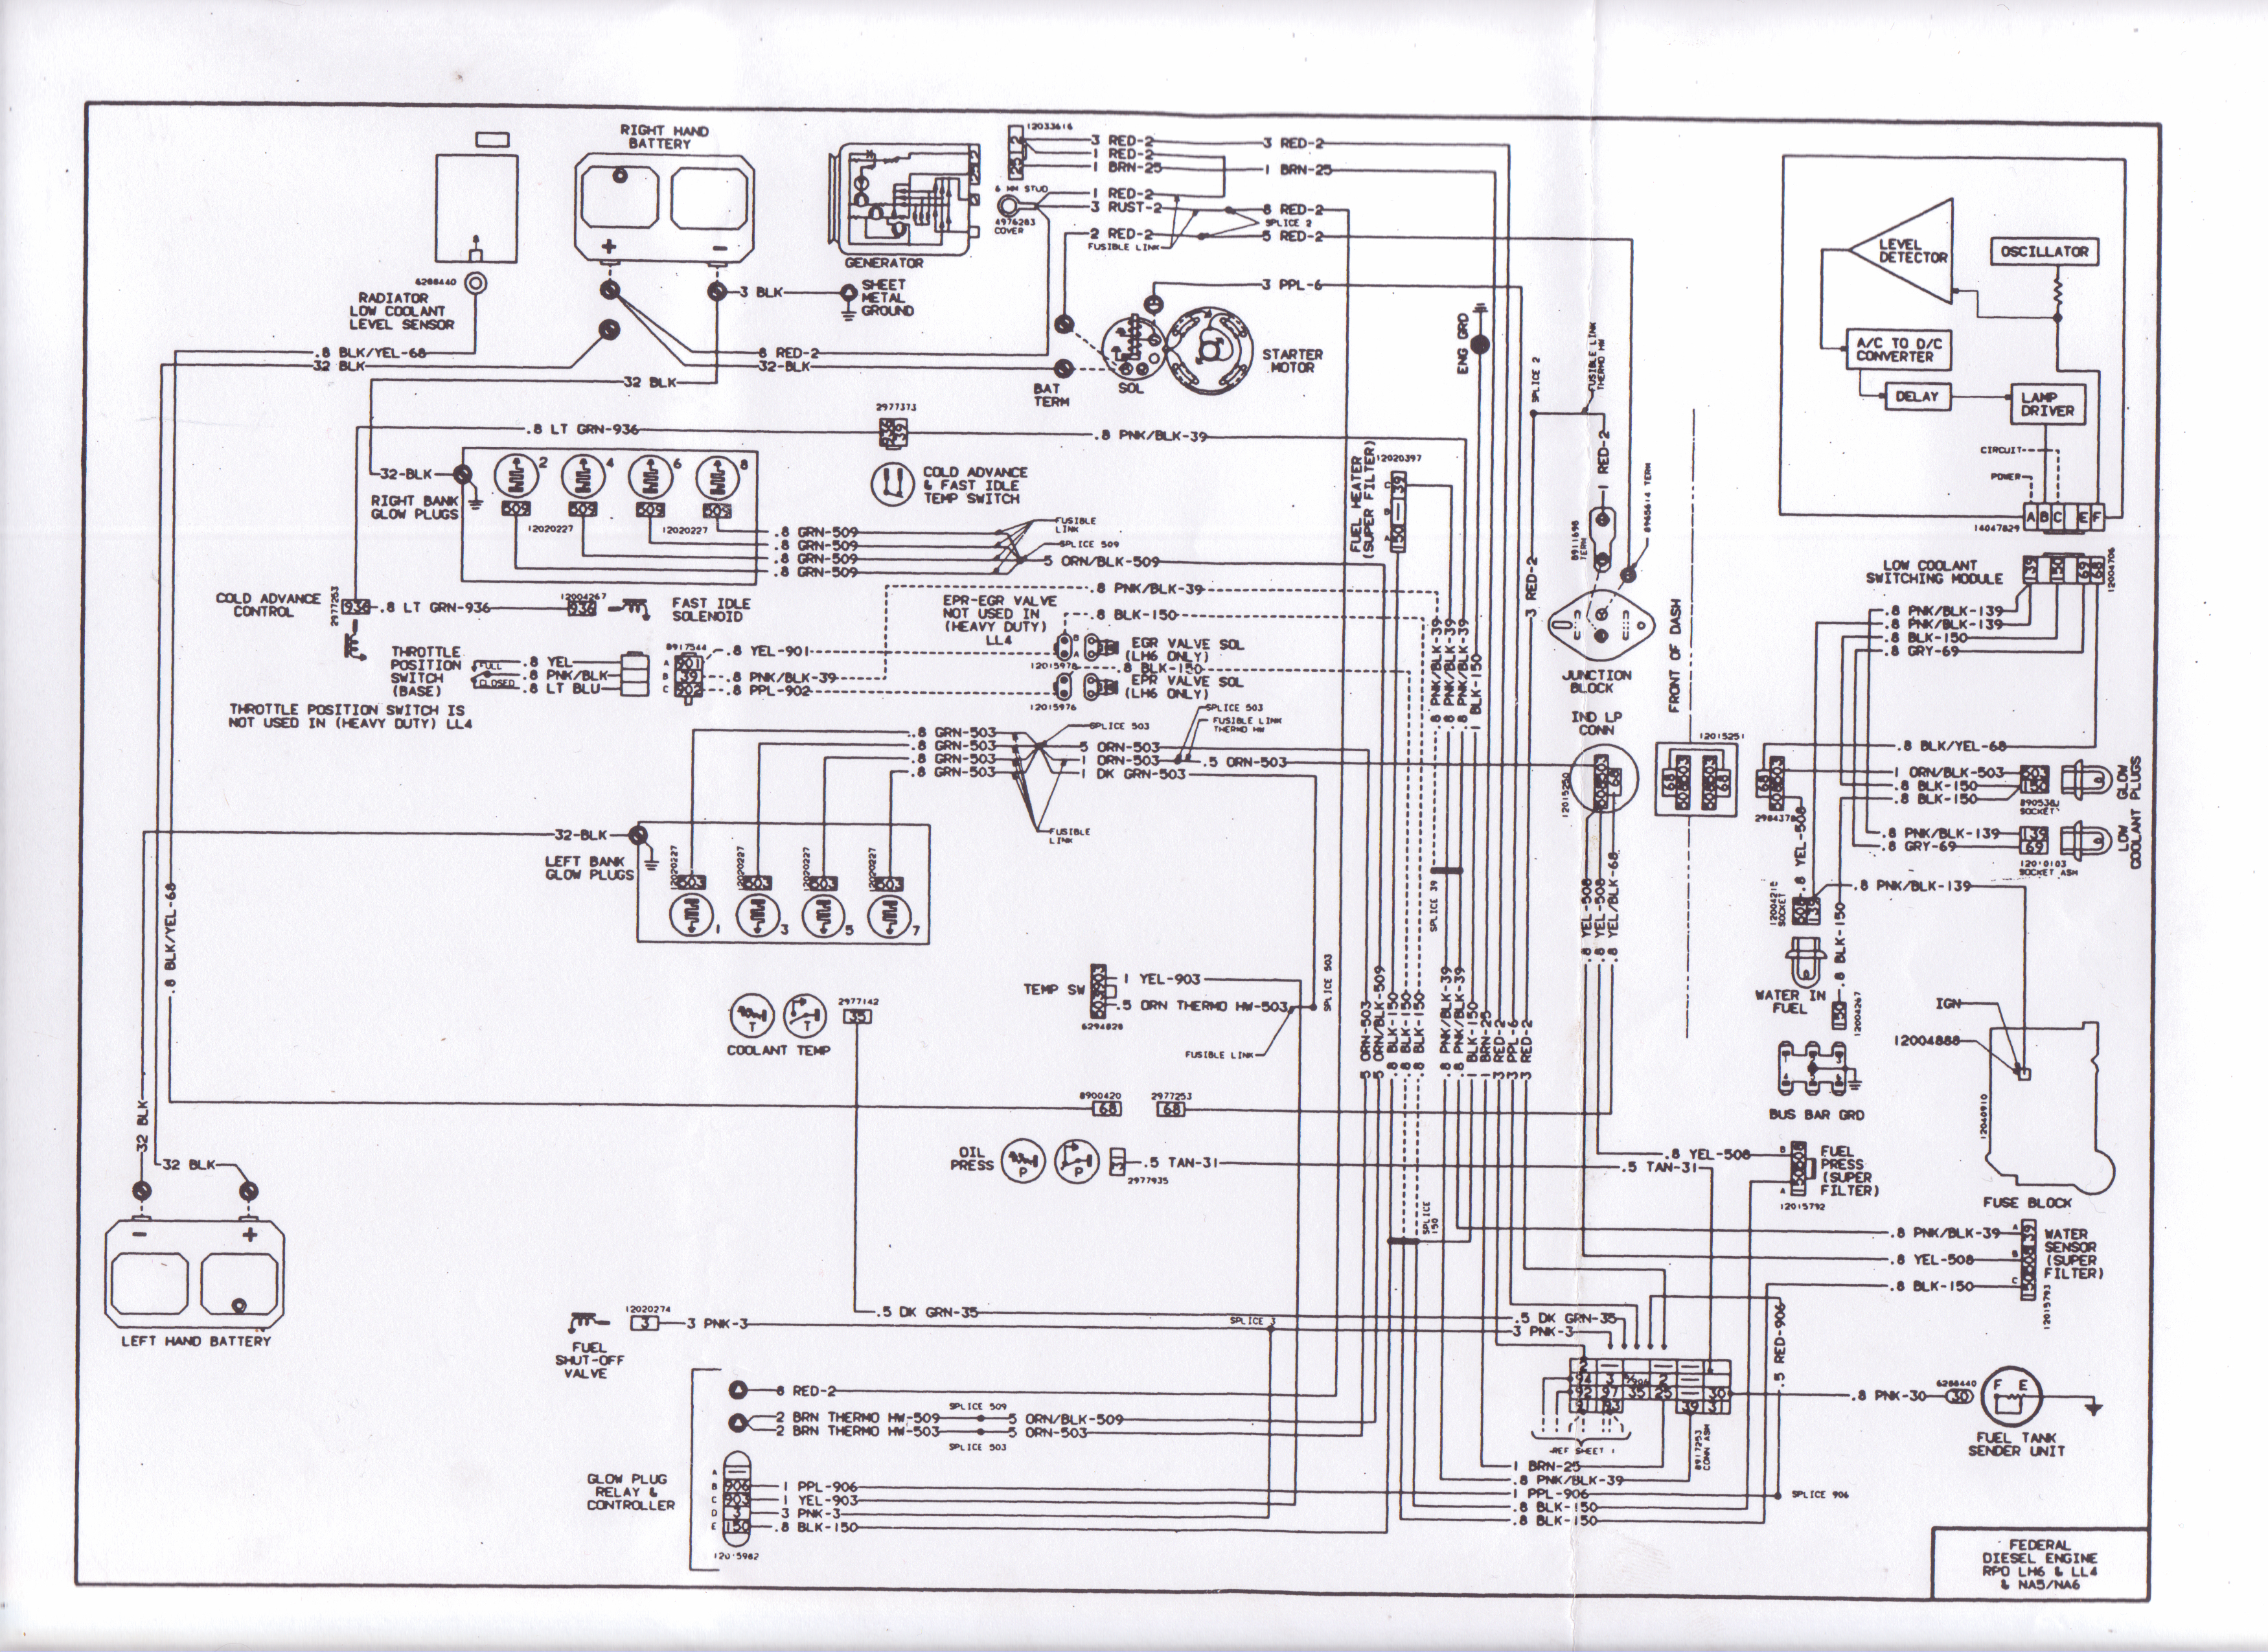 1983 Wiring Diagram - Diesel Place : Chevrolet and GMC Diesel Truck Forums